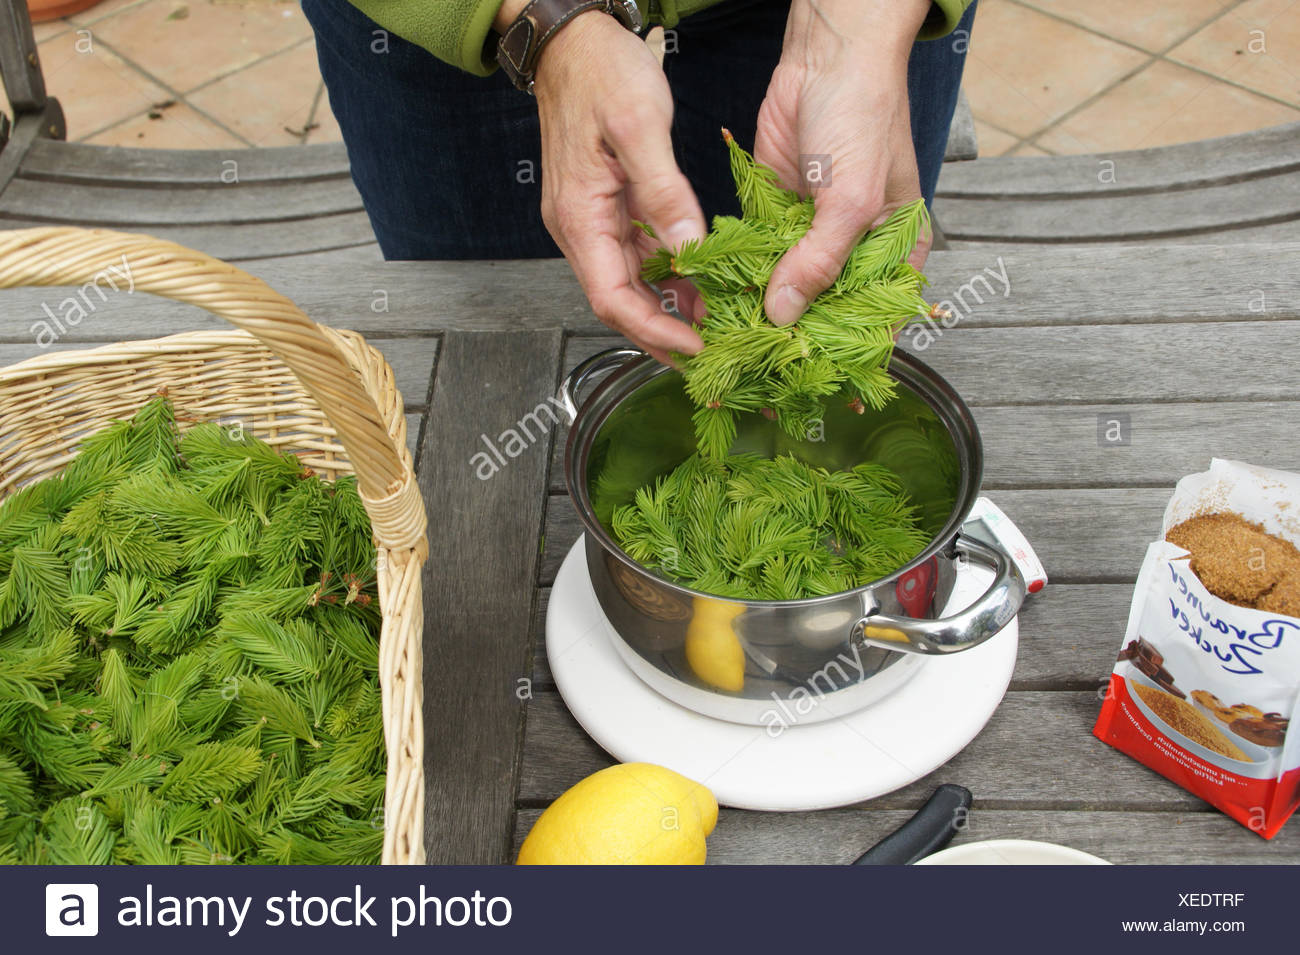 Weighing spruce-shoots - Stock Image